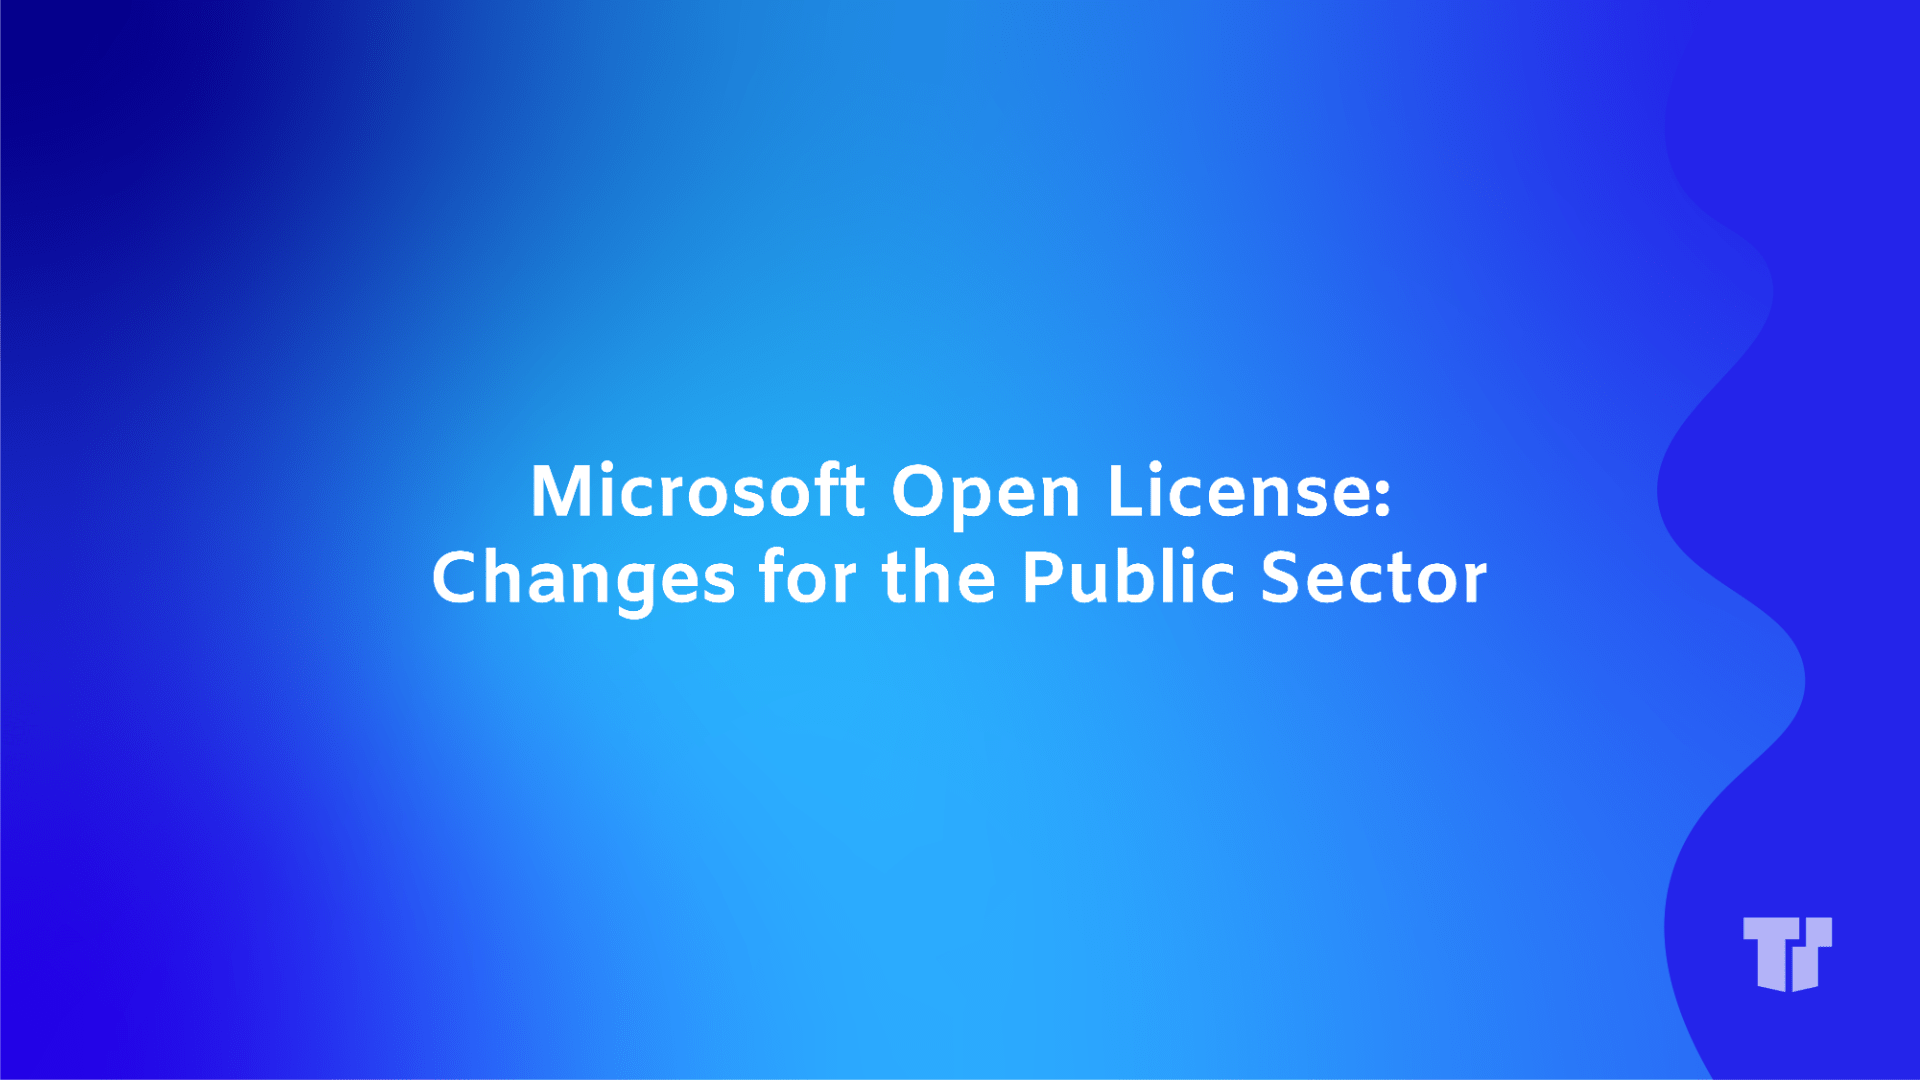 Microsoft Open License: Changes for the Public Sector cover image